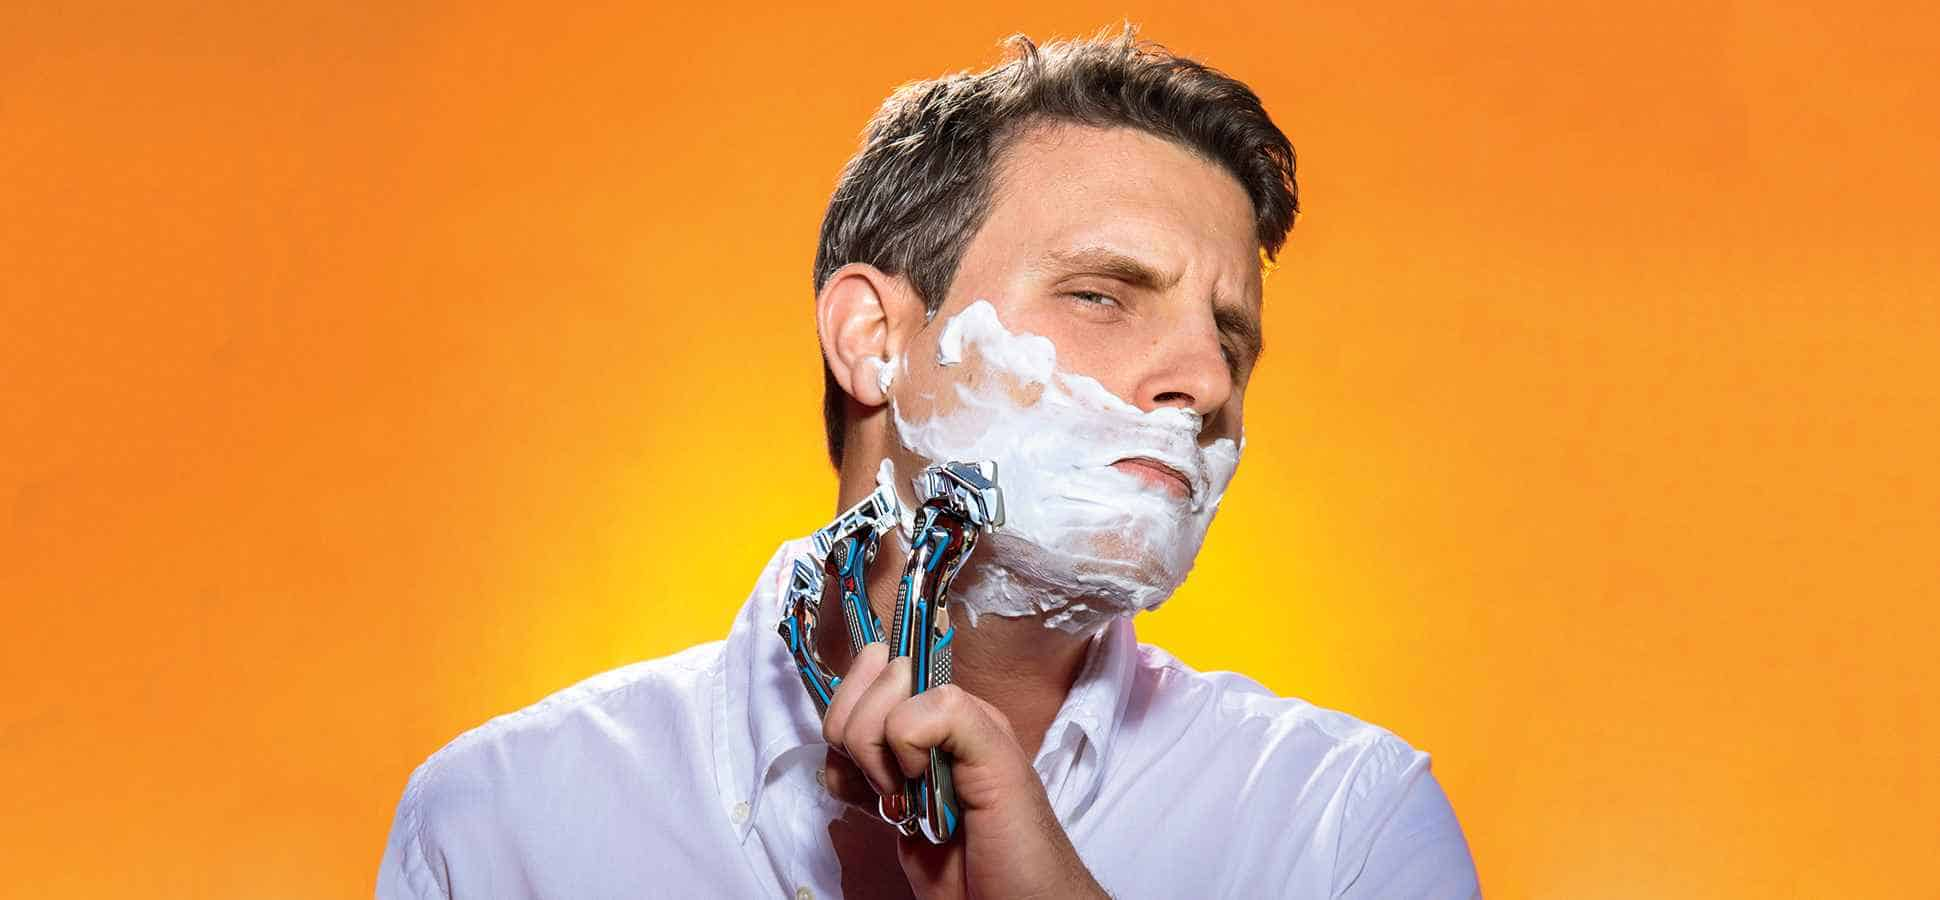 Is Dollar Shave Club a Scam?